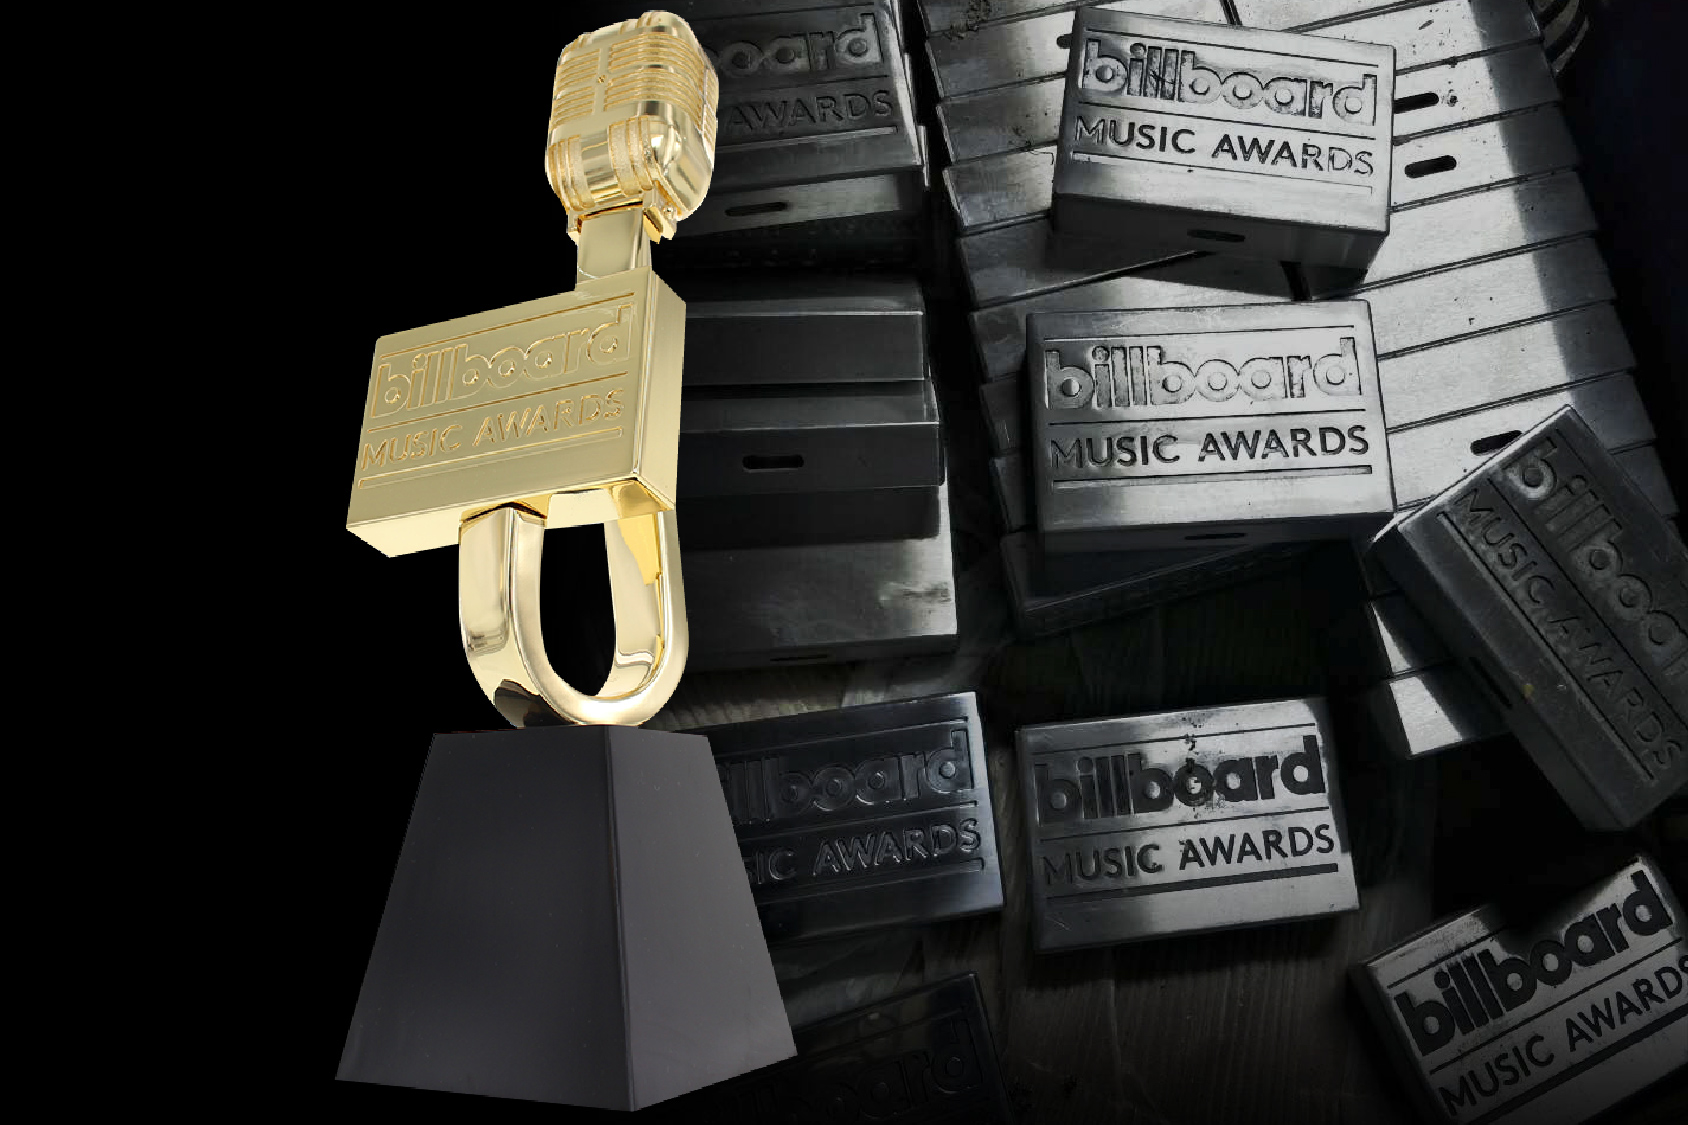 Billboard Music Awards trophy in front of machined plaques